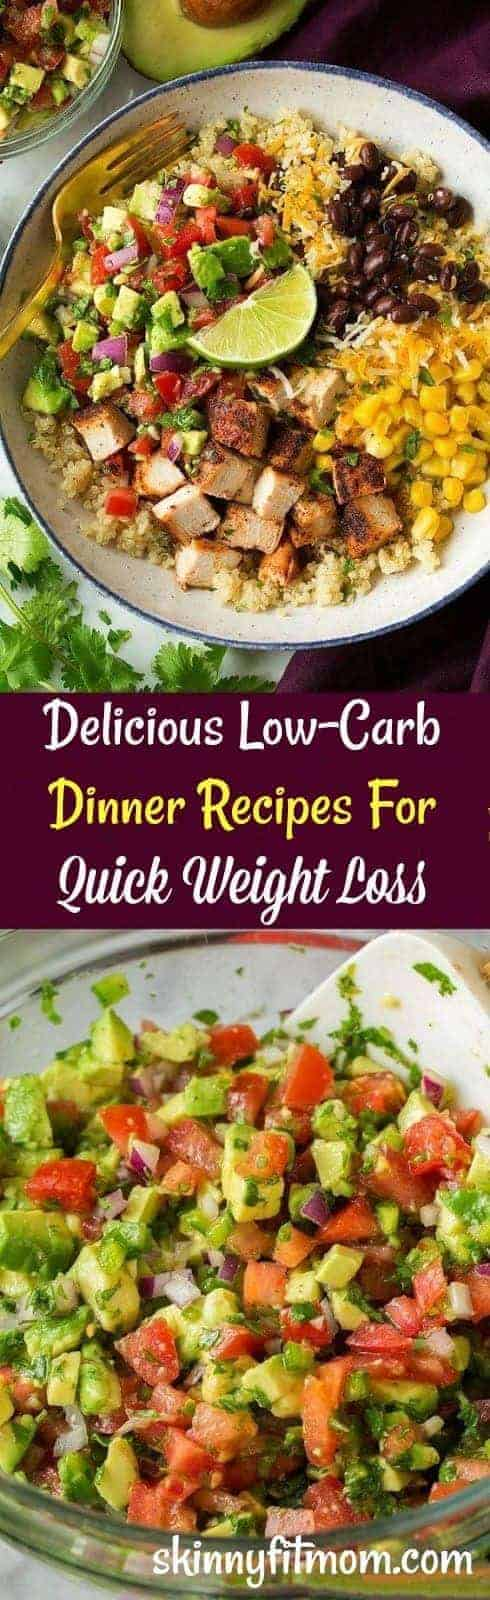 Simple and Delicious Low-Carb Dinner Recipes For Quick Weight Loss. You will be amazed at how fast results can come.